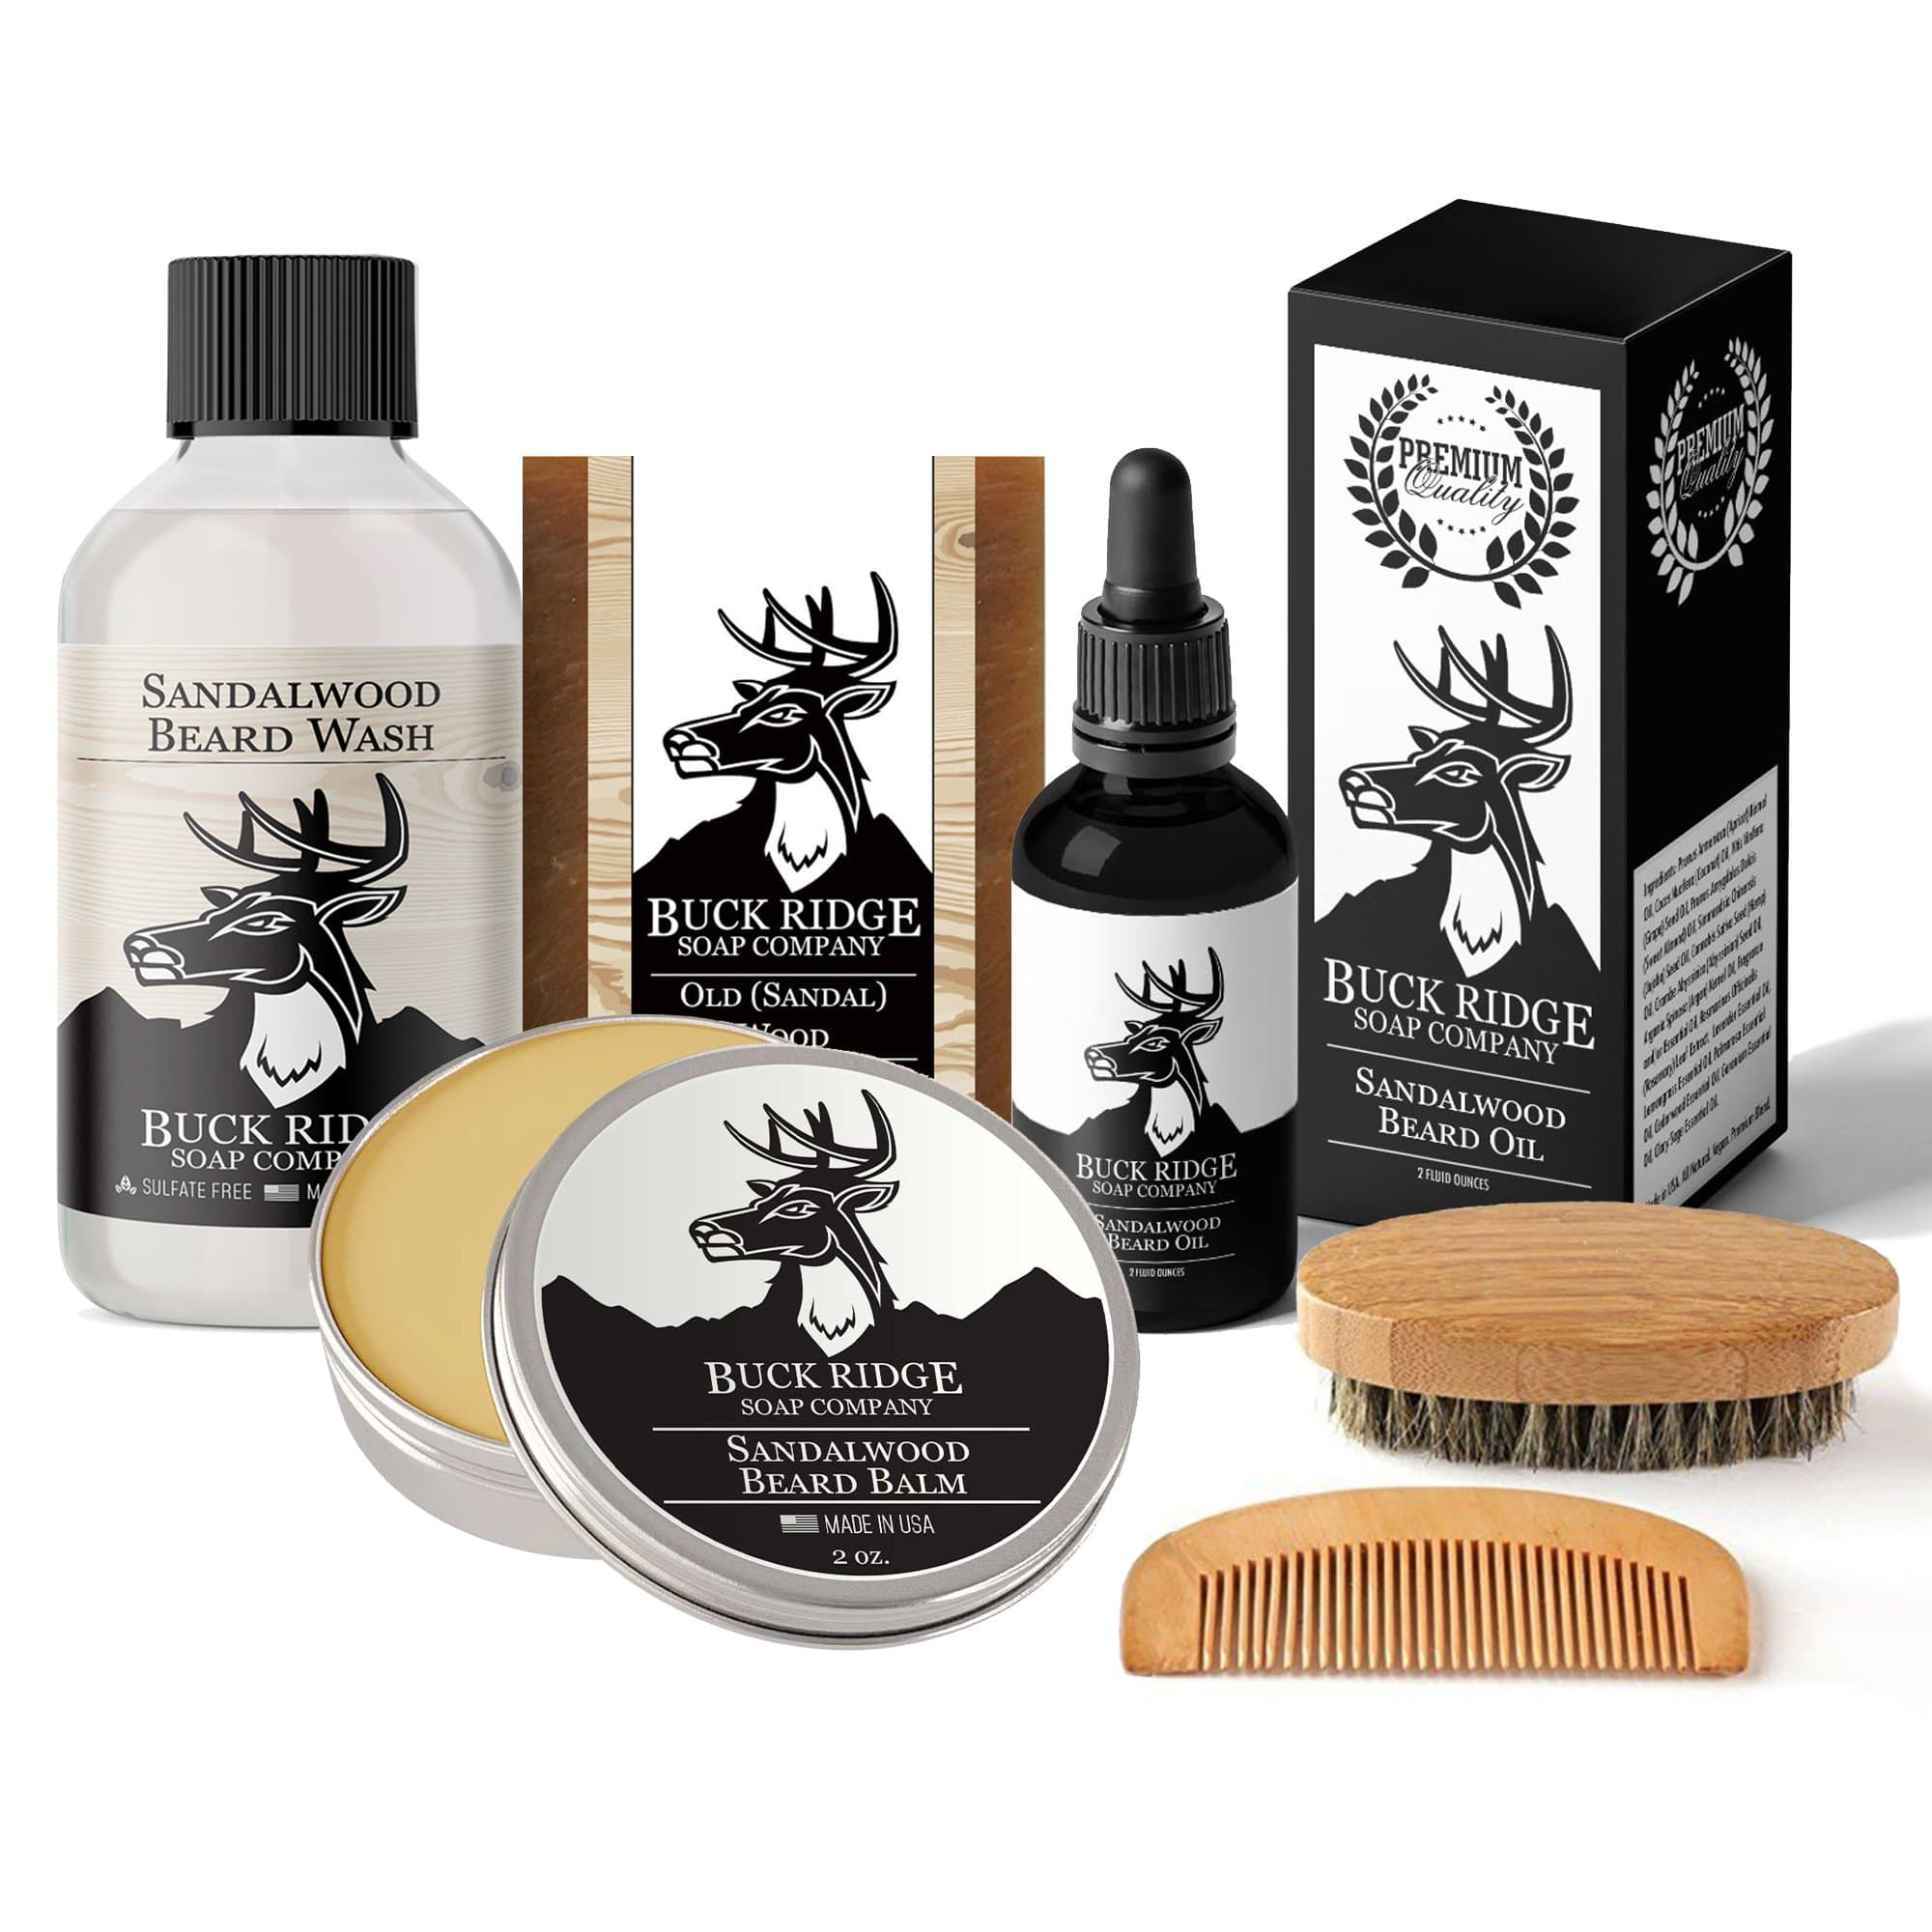 BestGroomingX™ Men's Grooming Natural Beard and Body Care Gift Set